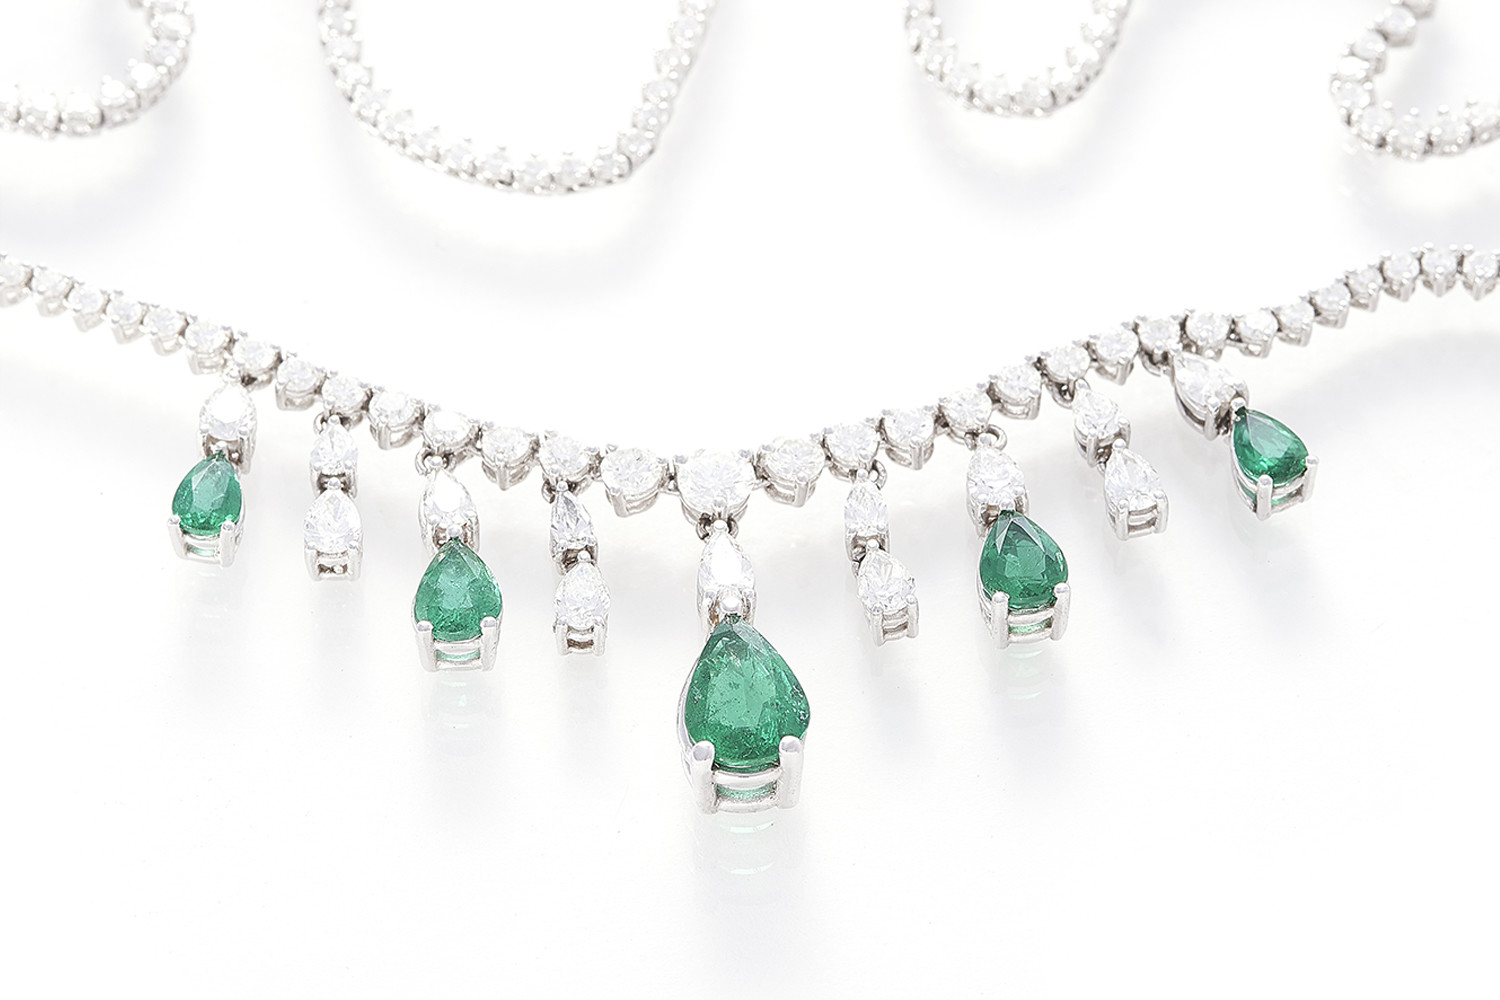 Sussex photography, commercial jewellery photography, photoshoot, necklace